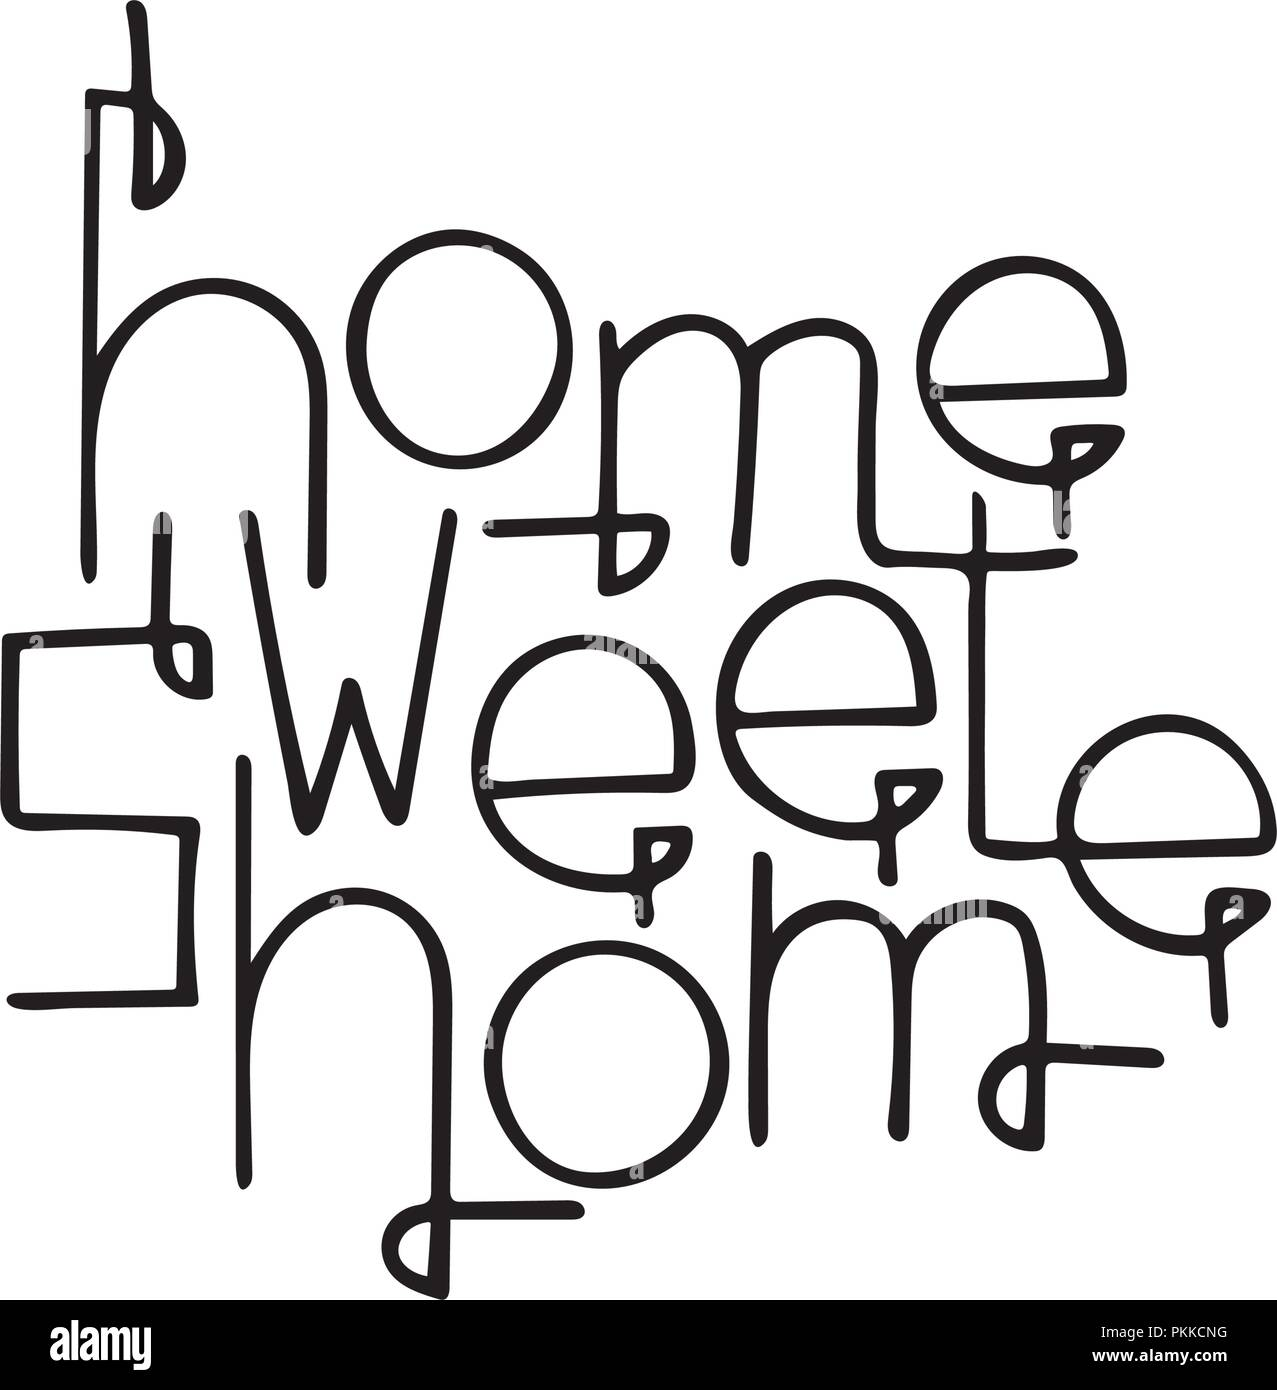 Monochrome hand-drawn lettering quote with a phrase Home sweet home. - Stock Vector